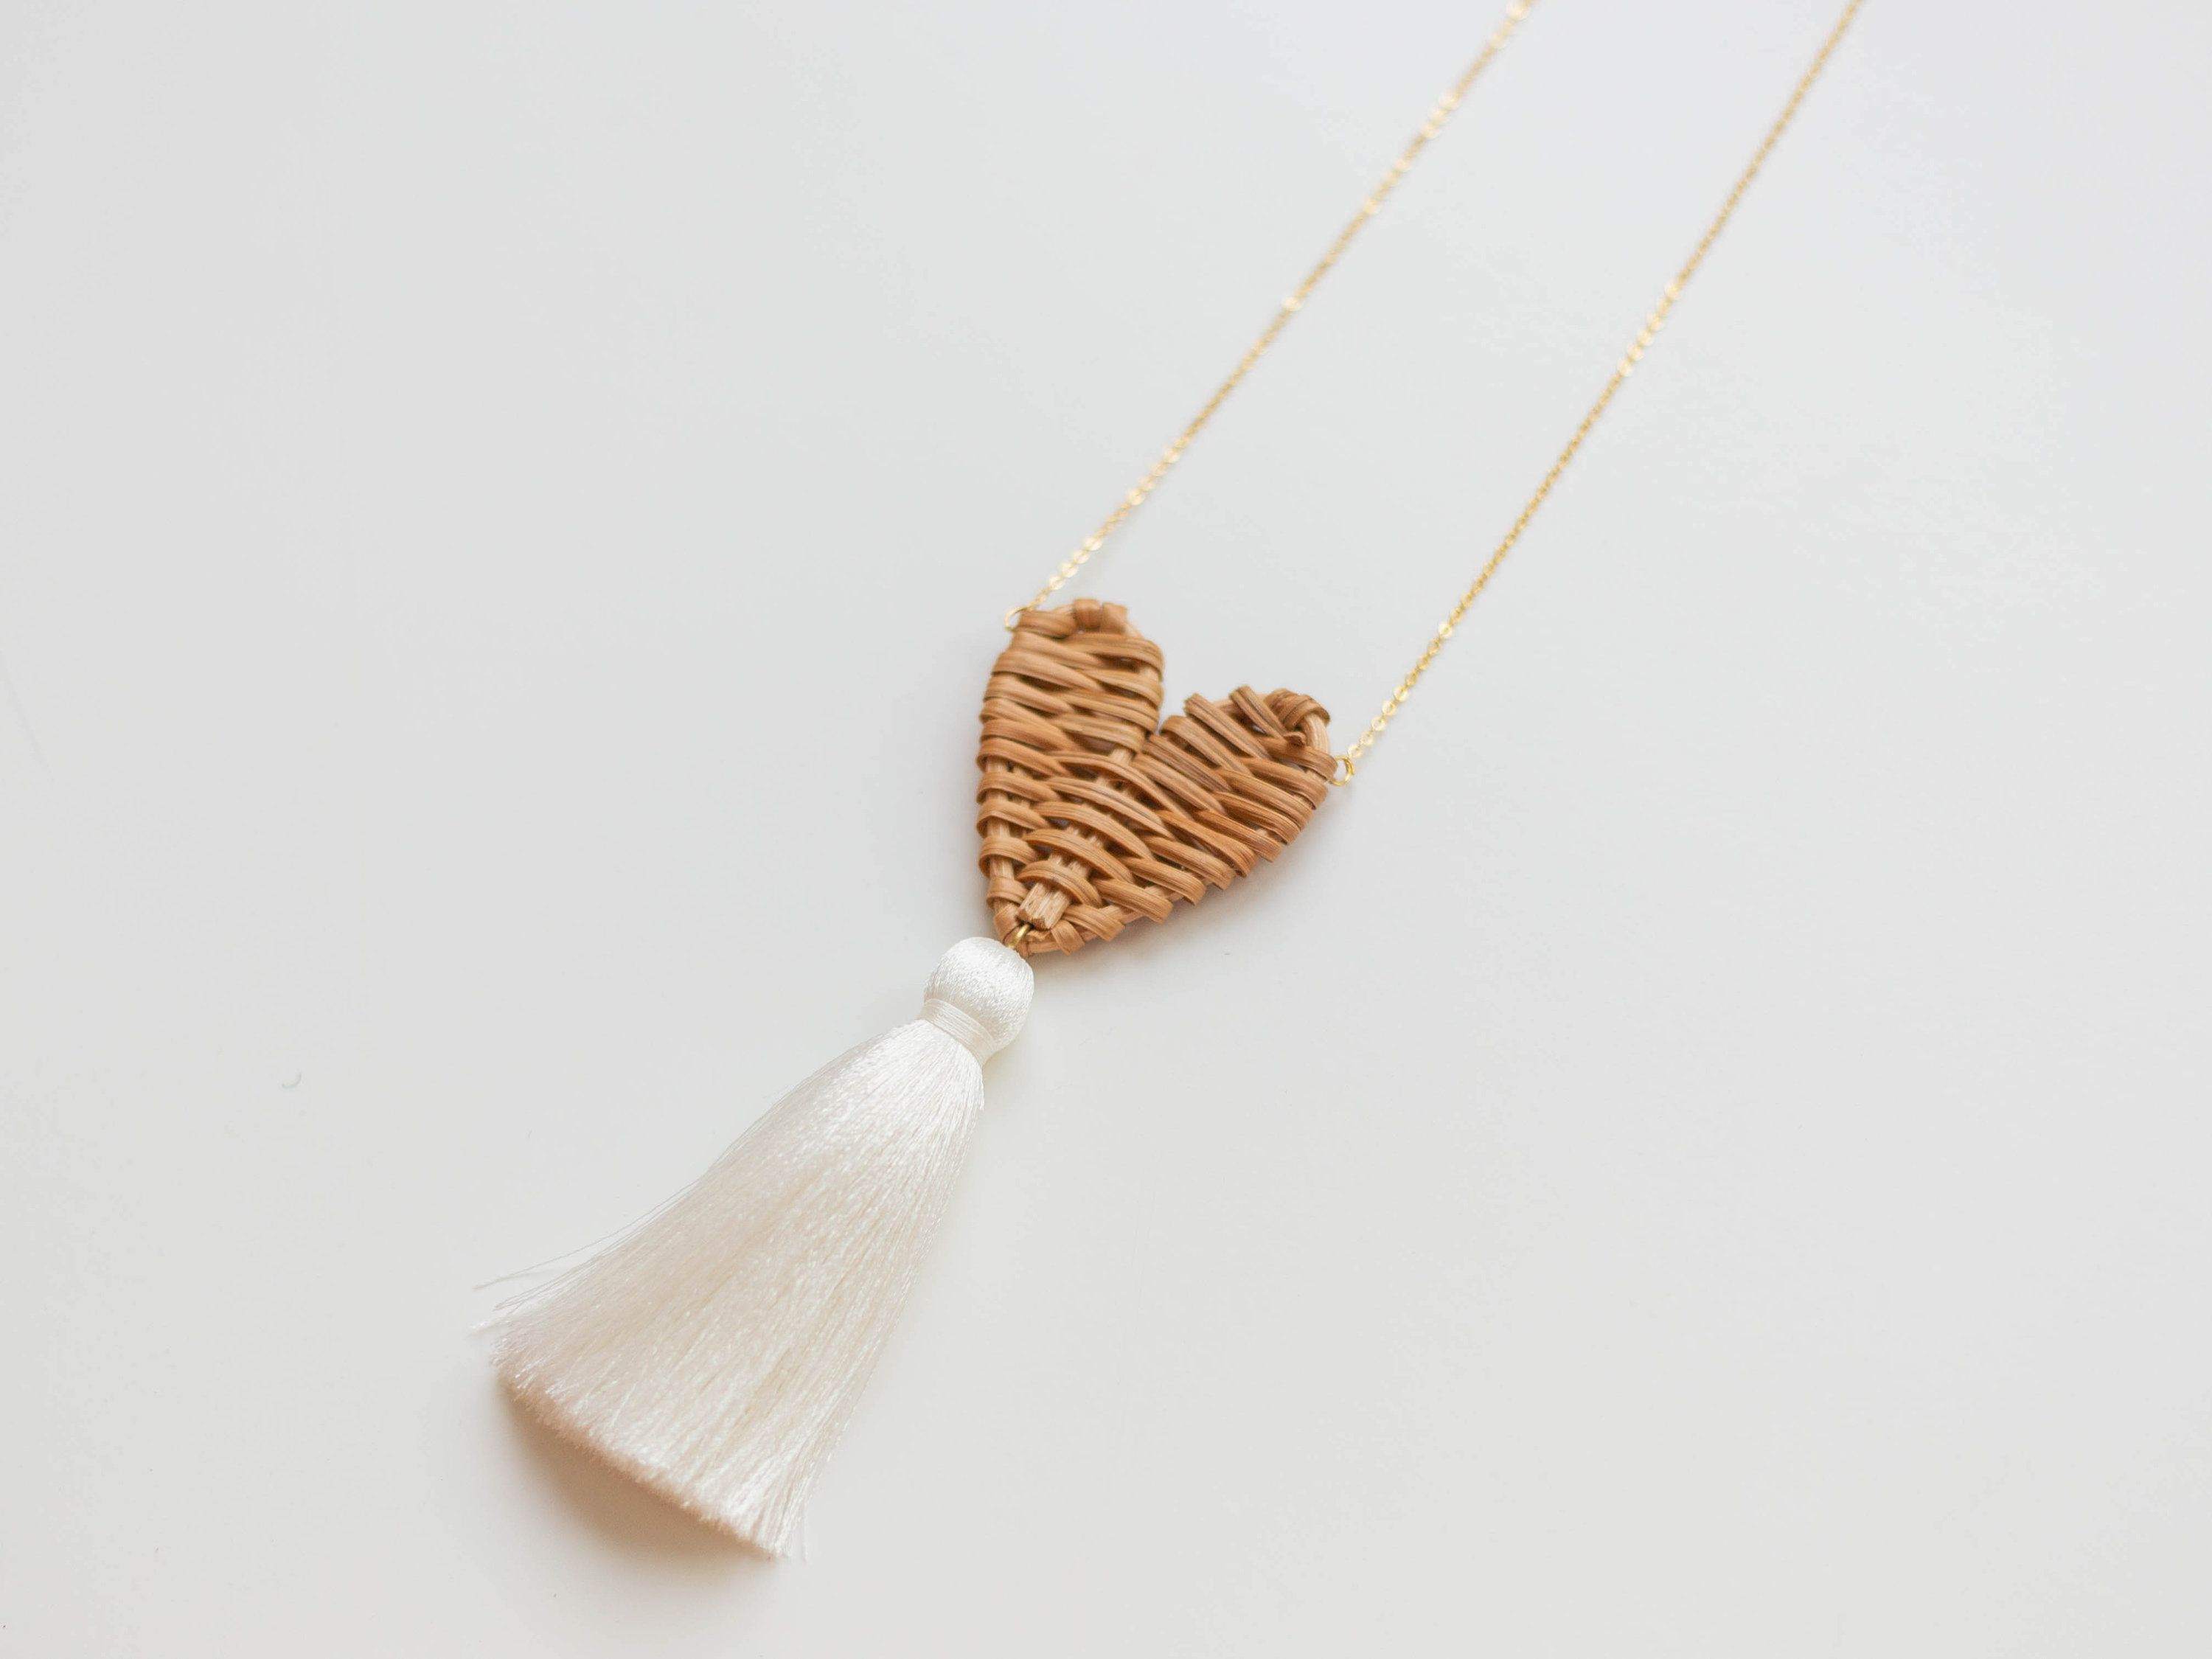 Rattan Necklace Heart Necklace Tassel Necklace Boho Necklace Mom Gift for Women Girlfriend Gift for Her Love Gift Straw Necklace /AMORE